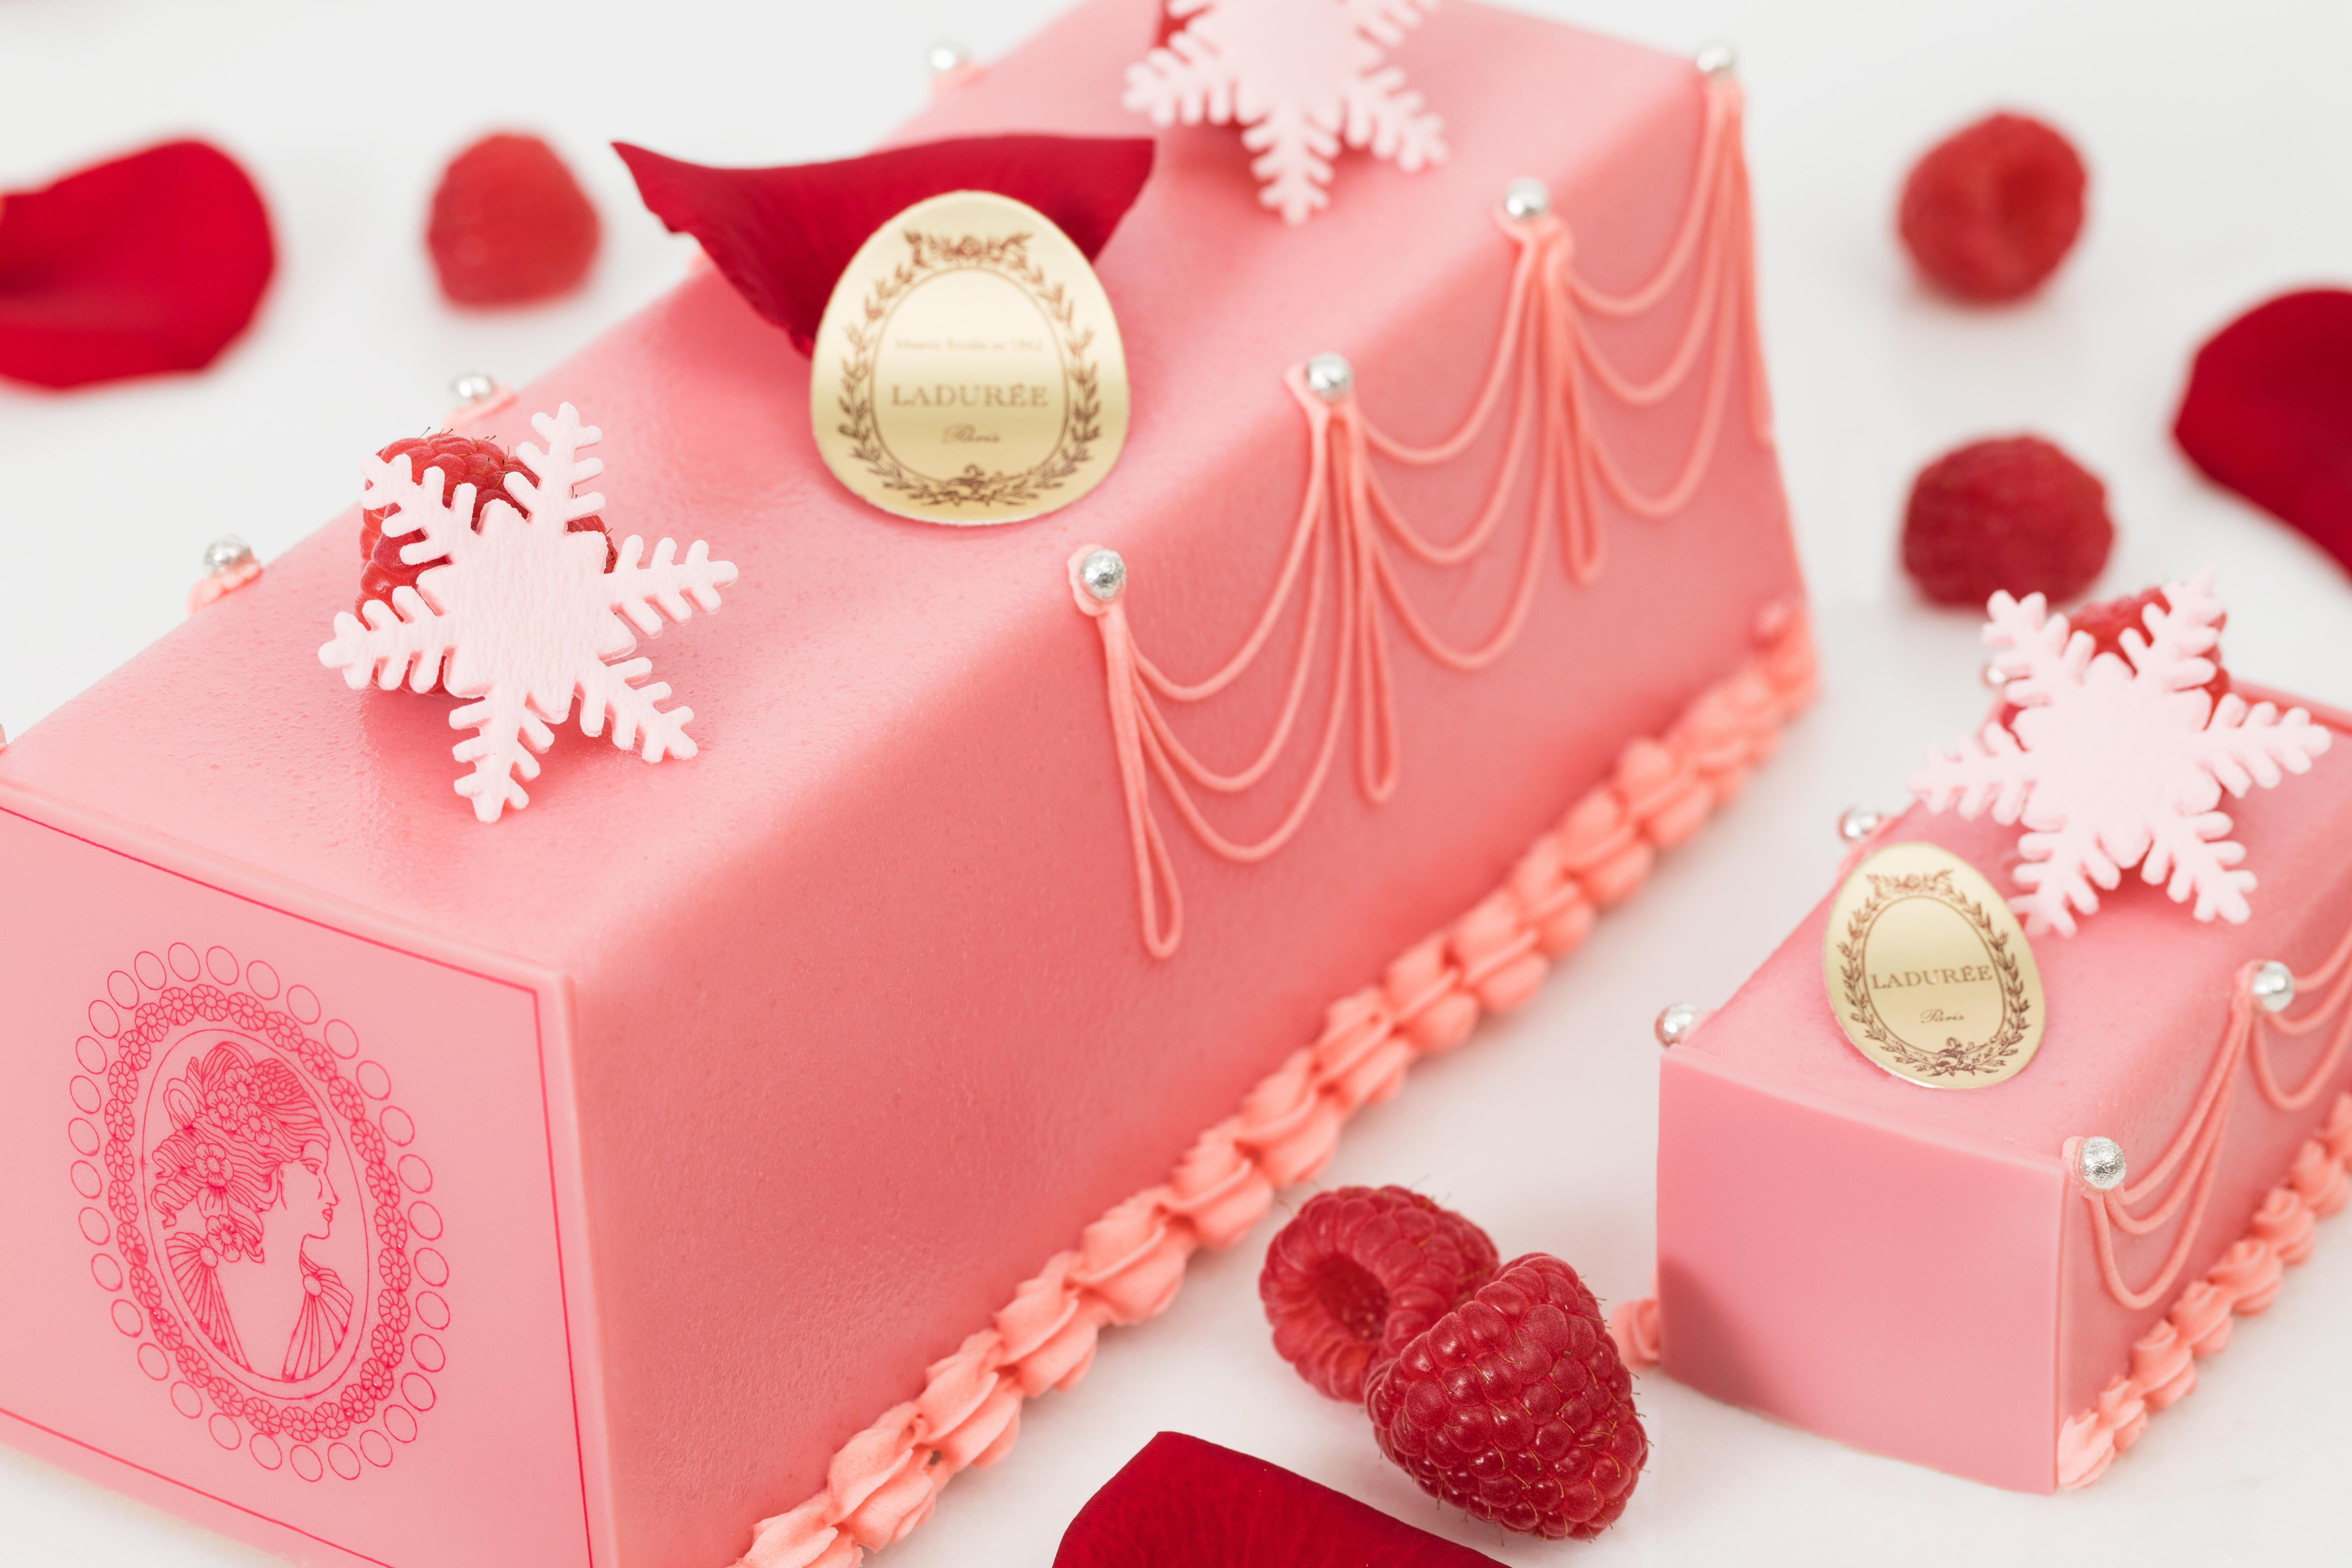 Four beautifully crafted Yule logs vie for your affections: hazelnut, rose-raspberry, chocolate, and almond. (Image: Courtesy Laduree)